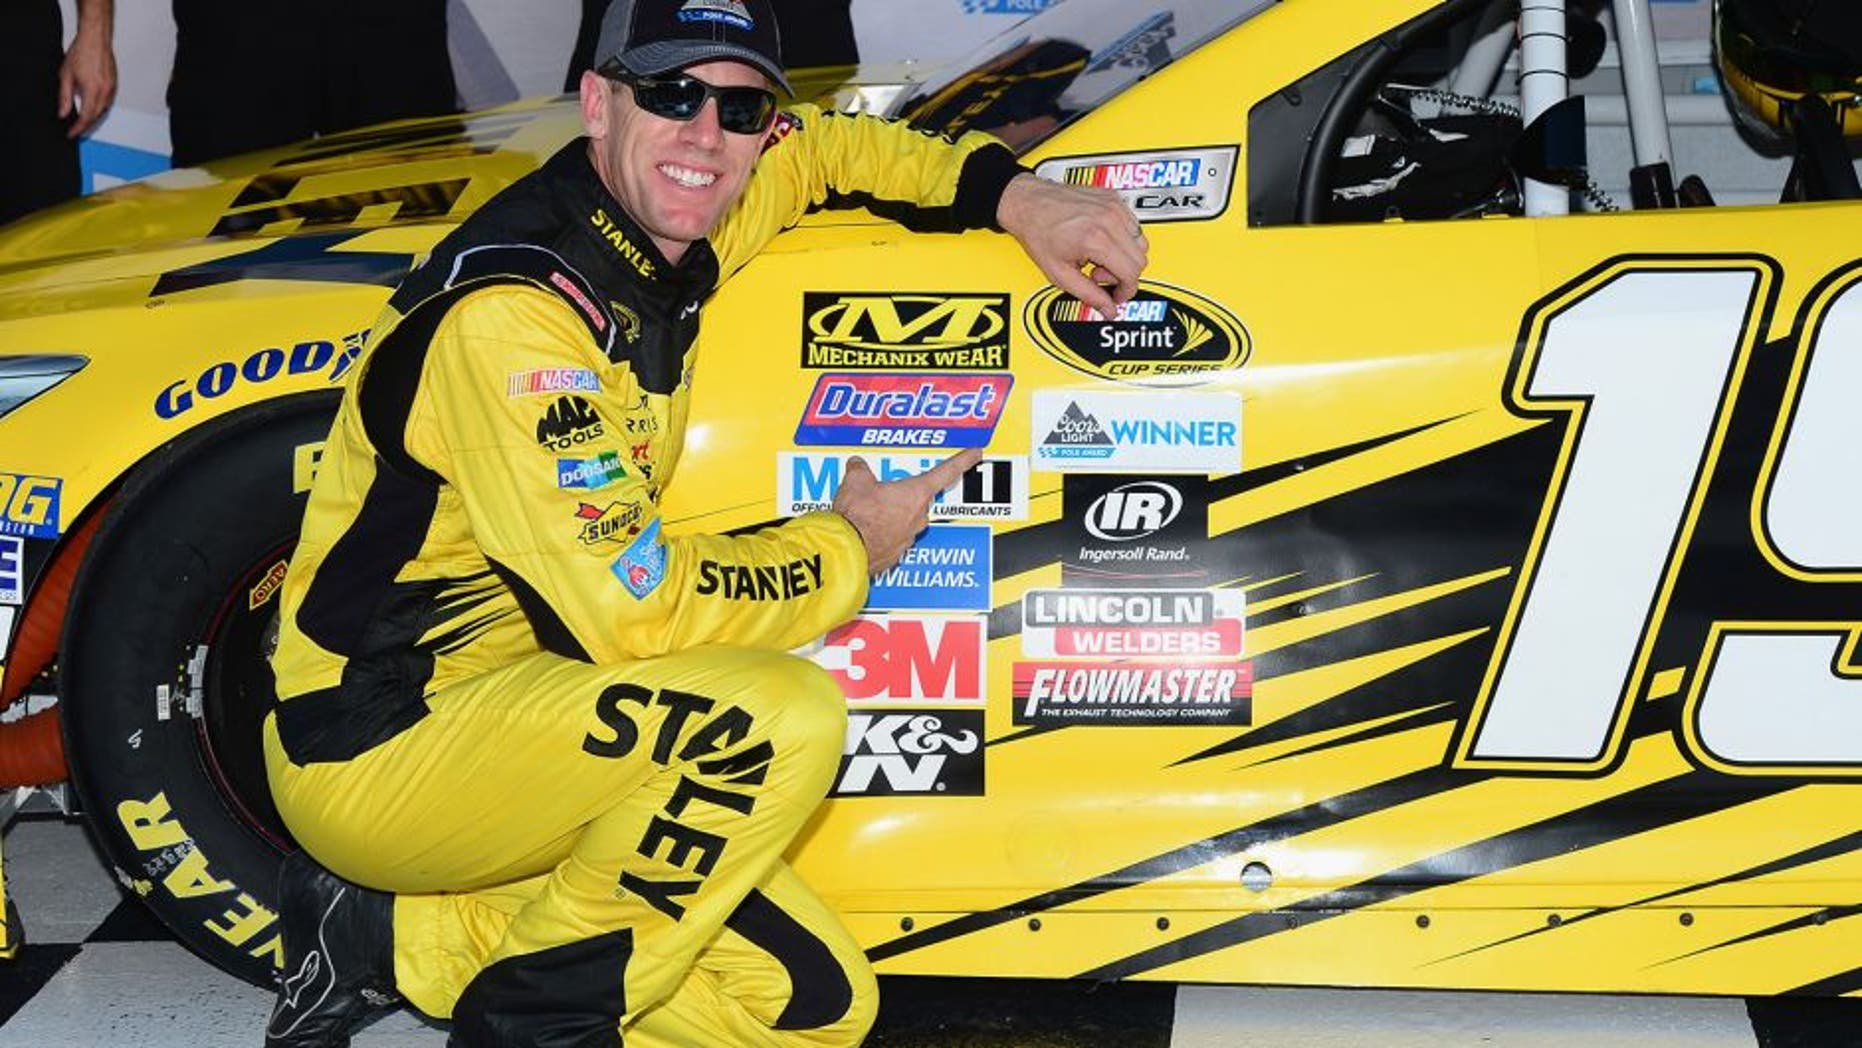 BRISTOL, TN - AUGUST 19: Carl Edwards, driver of the #19 Stanley Toyota, poses with the Coors Light Pole award after qualifying for the pole position for the NASCAR Sprint Cup Series Bass Pro Shops NRA Night Race at Bristol Motor Speedway on August 19, 2016 in Bristol, Tennessee. (Photo by Jeff Curry/NASCAR via Getty Images)